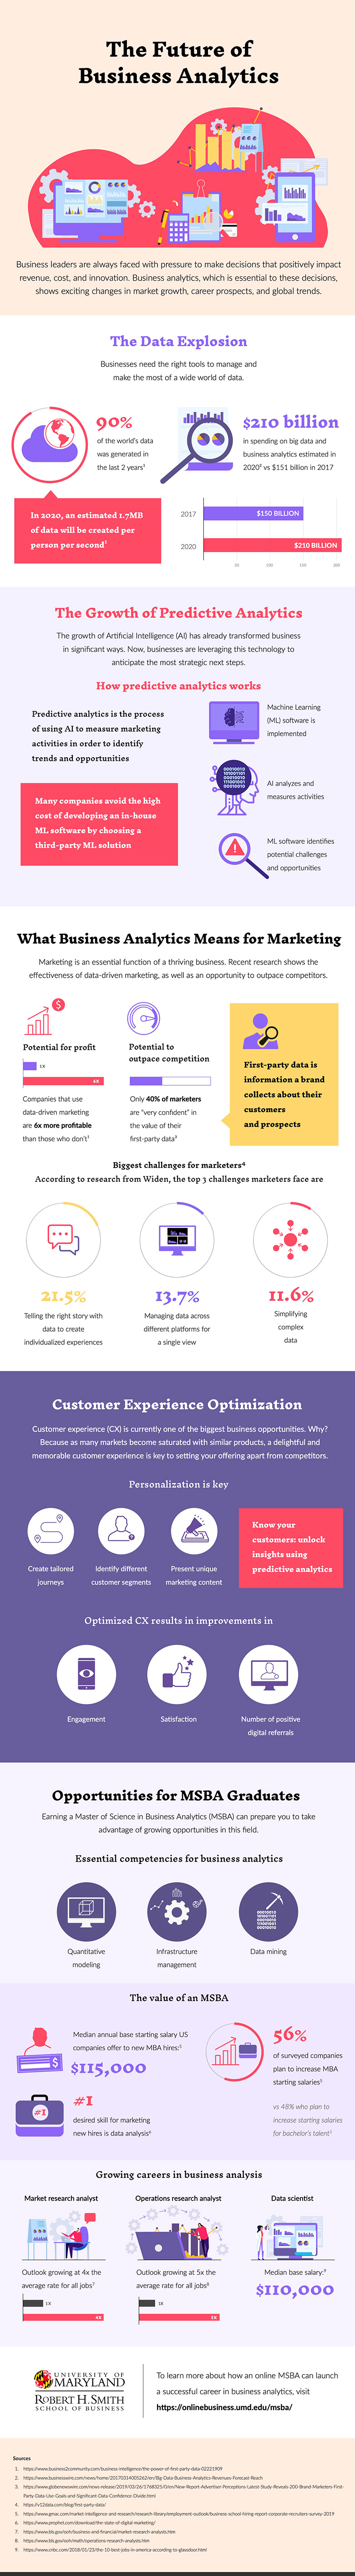 An infographic about why business analytics serve an important role in business operations and marketing by UMD Smith School of Business.